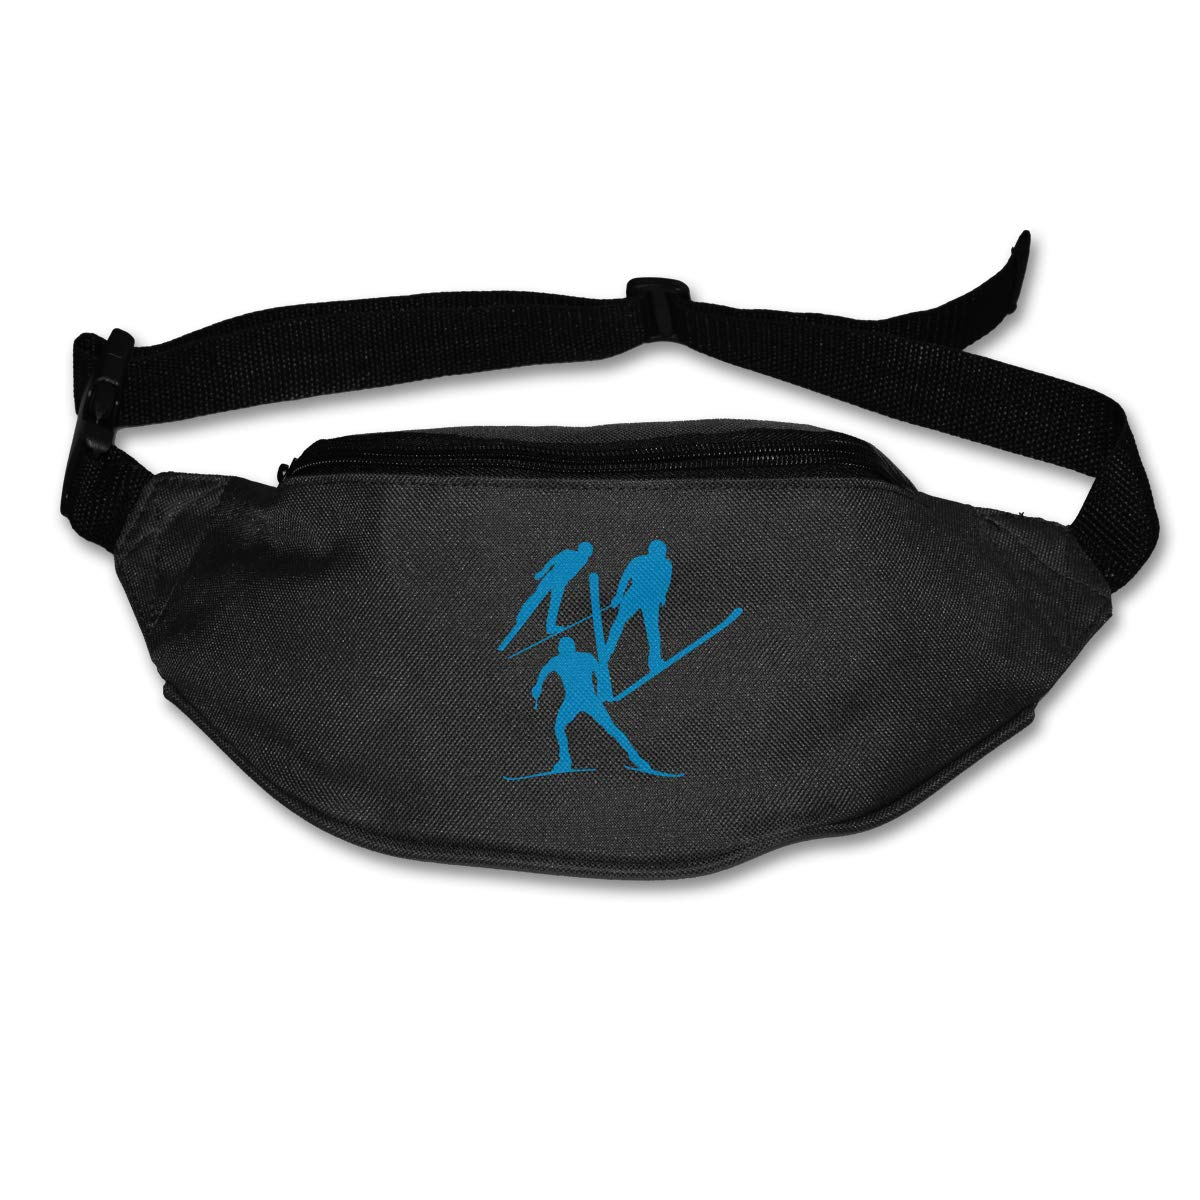 Nordic Combined Players Sport Waist Packs Fanny Pack Adjustable For Hike